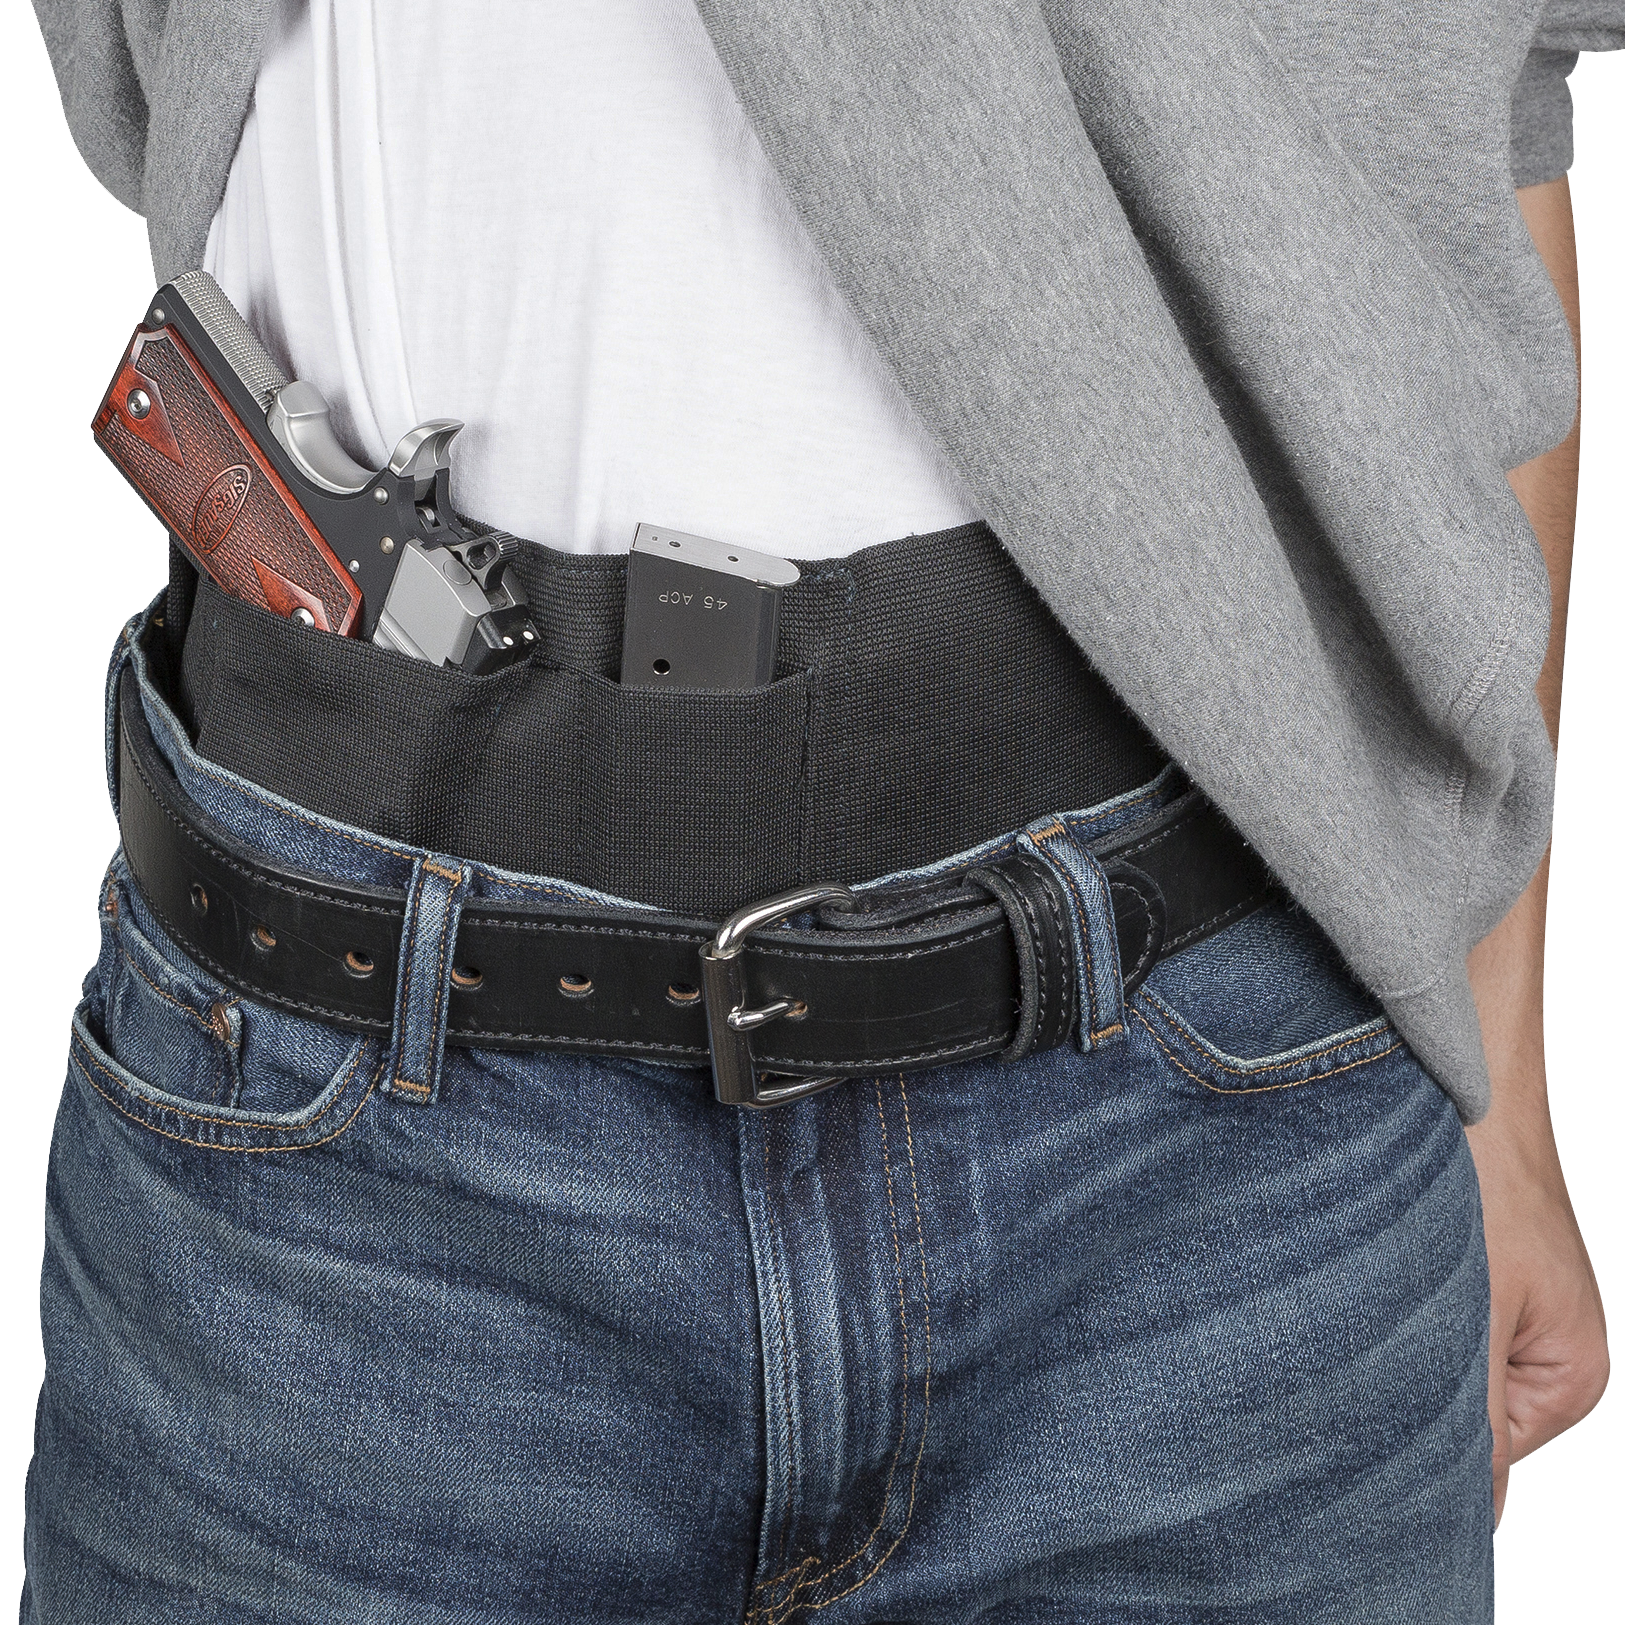 The Ultimate Concealed Carry Gun Belt Made In Usa